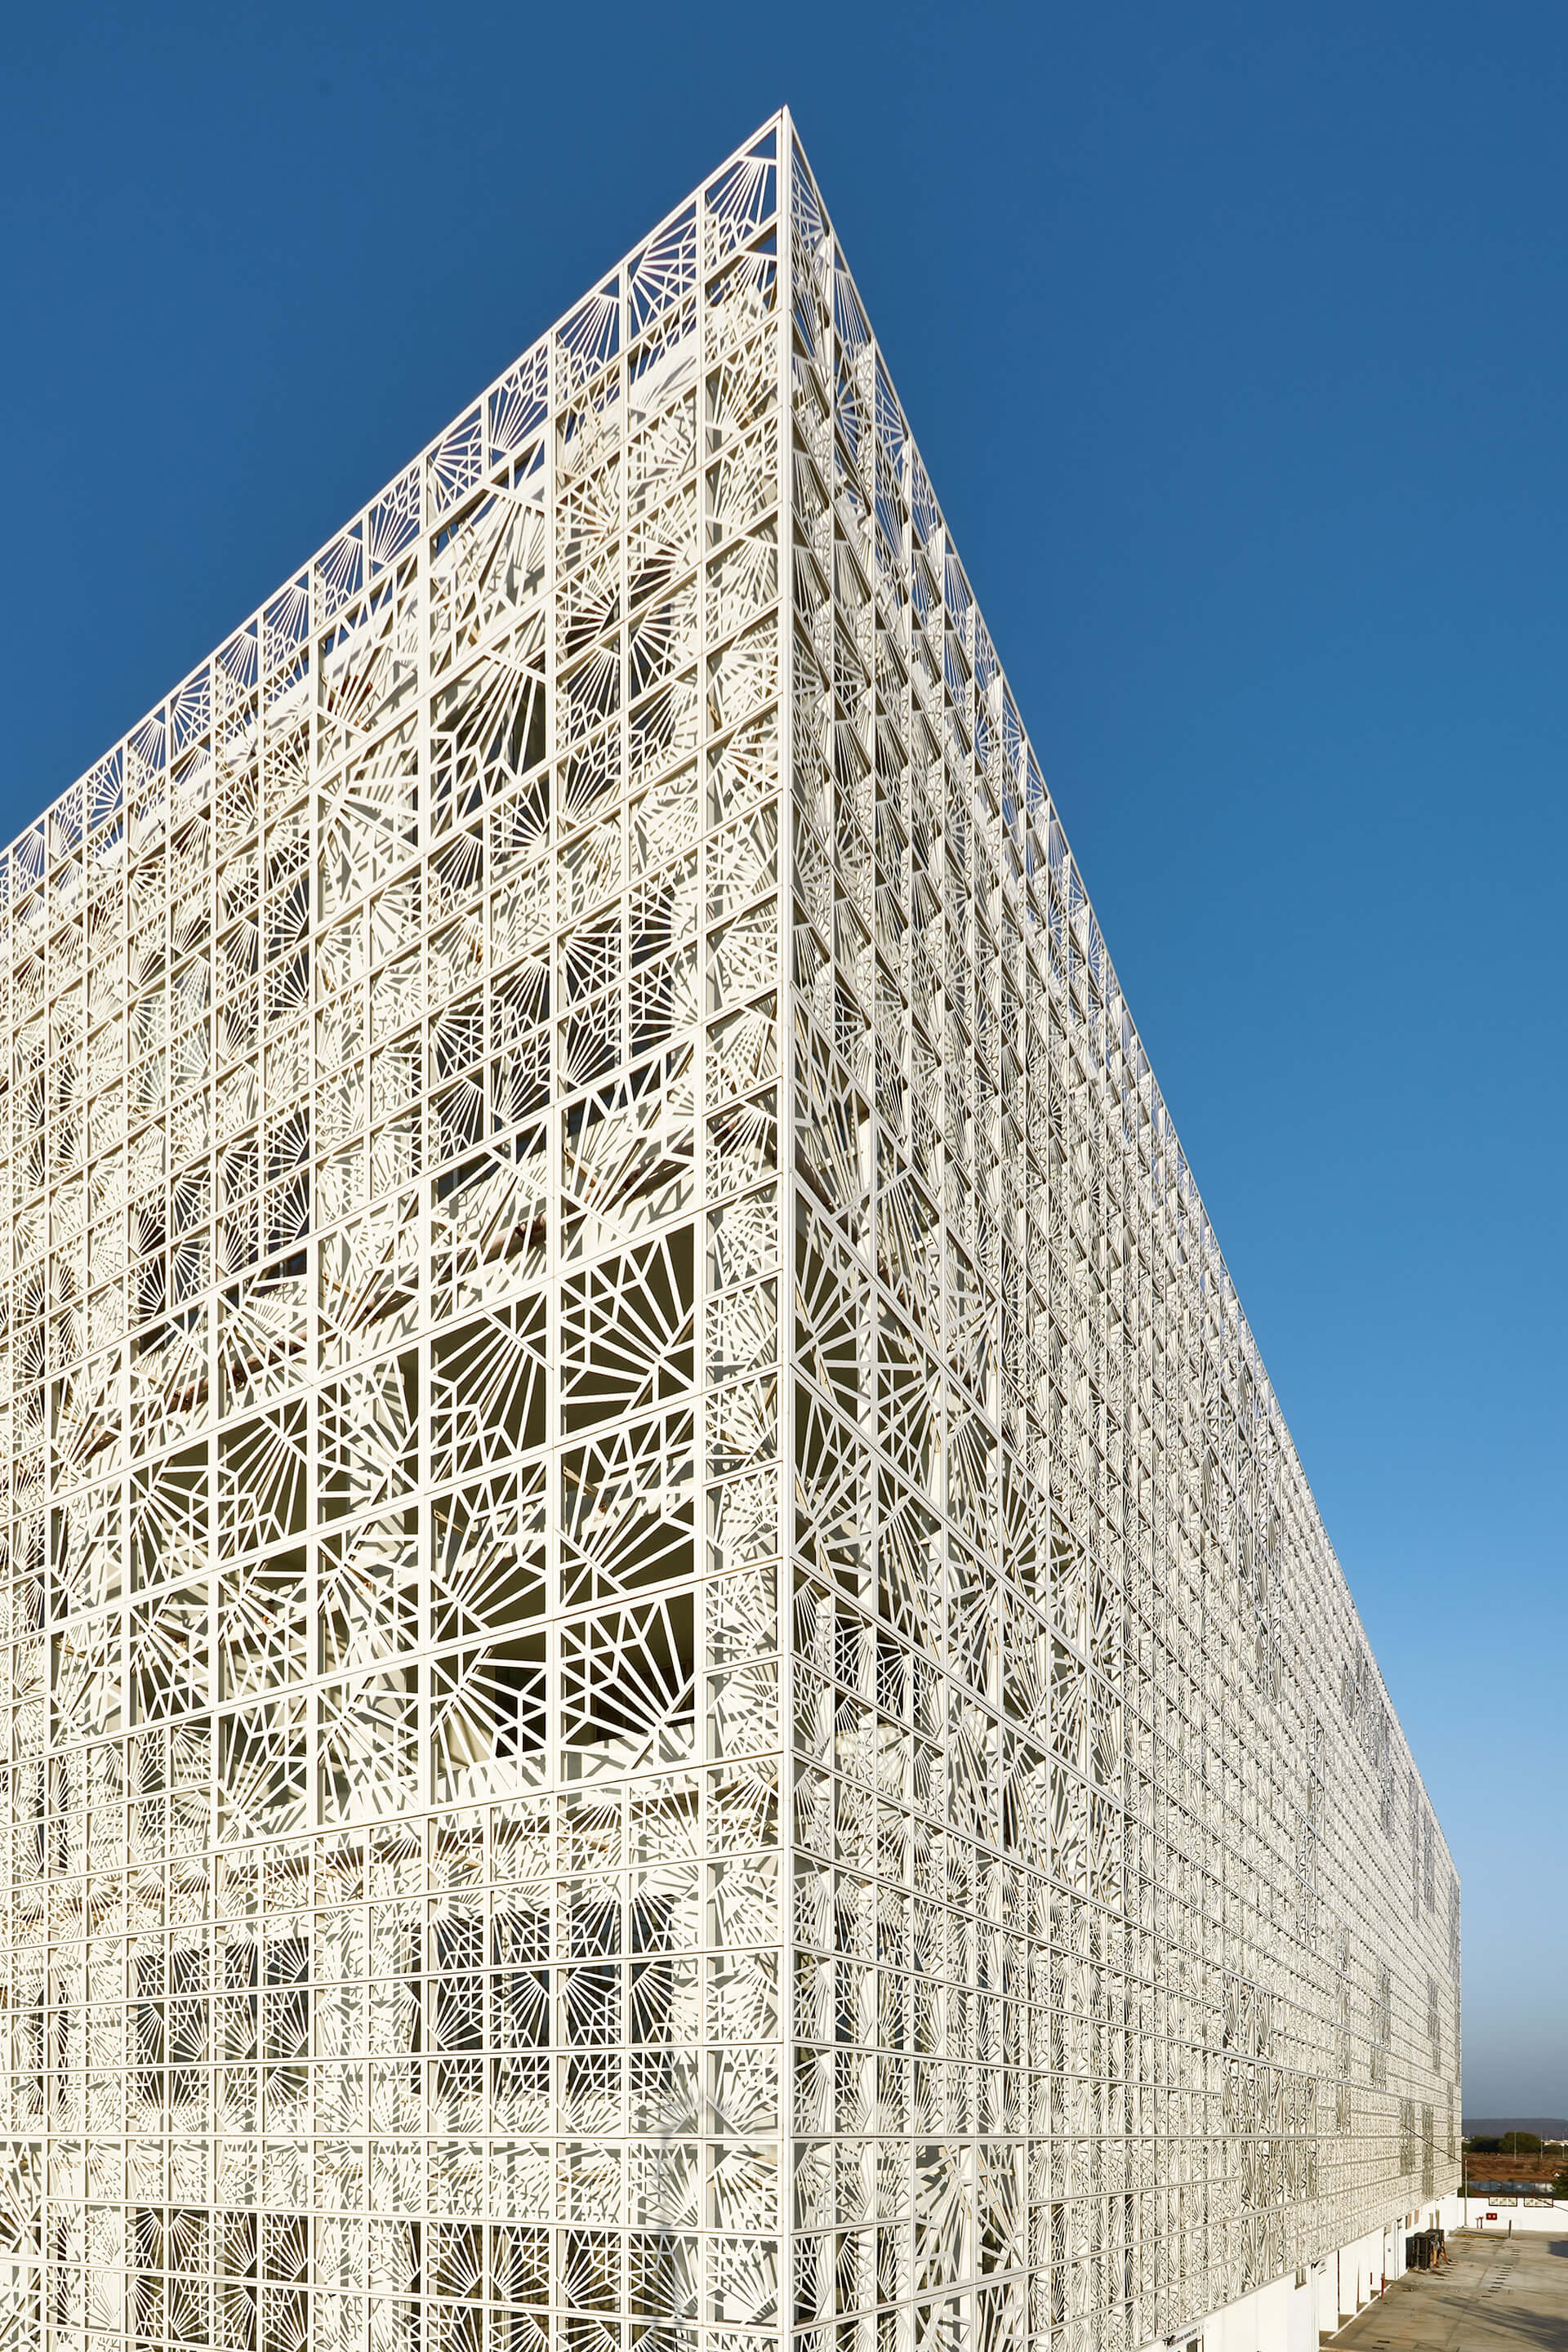 Laser cut latticework patterns decorate the façade | Auric Hall by IMK Architects | STIRworld